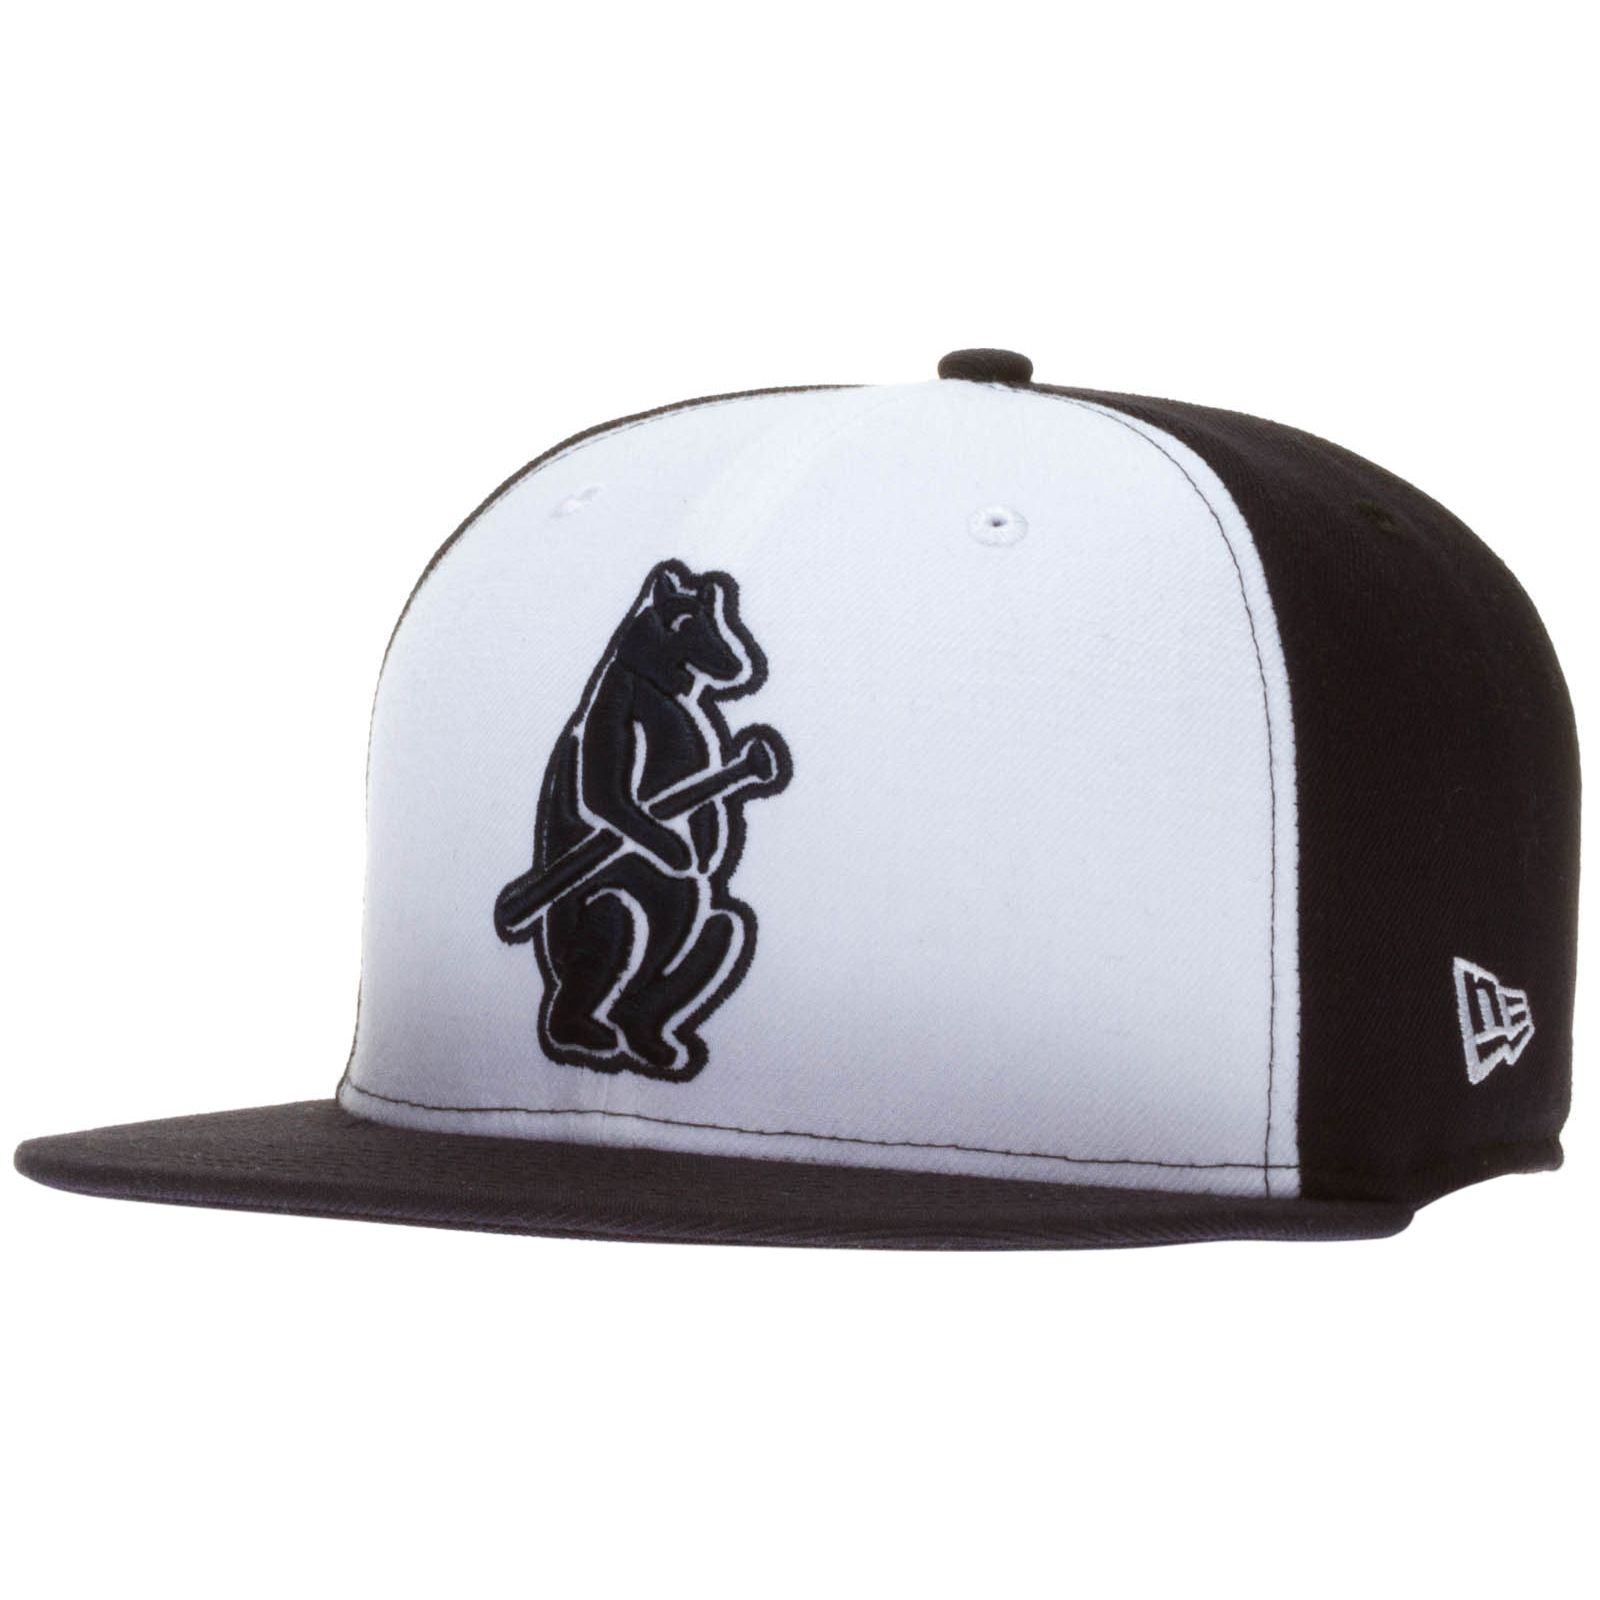 Chicago Cubs White and Navy Over-Size 1914 Bear with Bat Logo Snapback Hat  by New Era  Chicago  Cubs  ChicagoCubs 9b390032b0fc